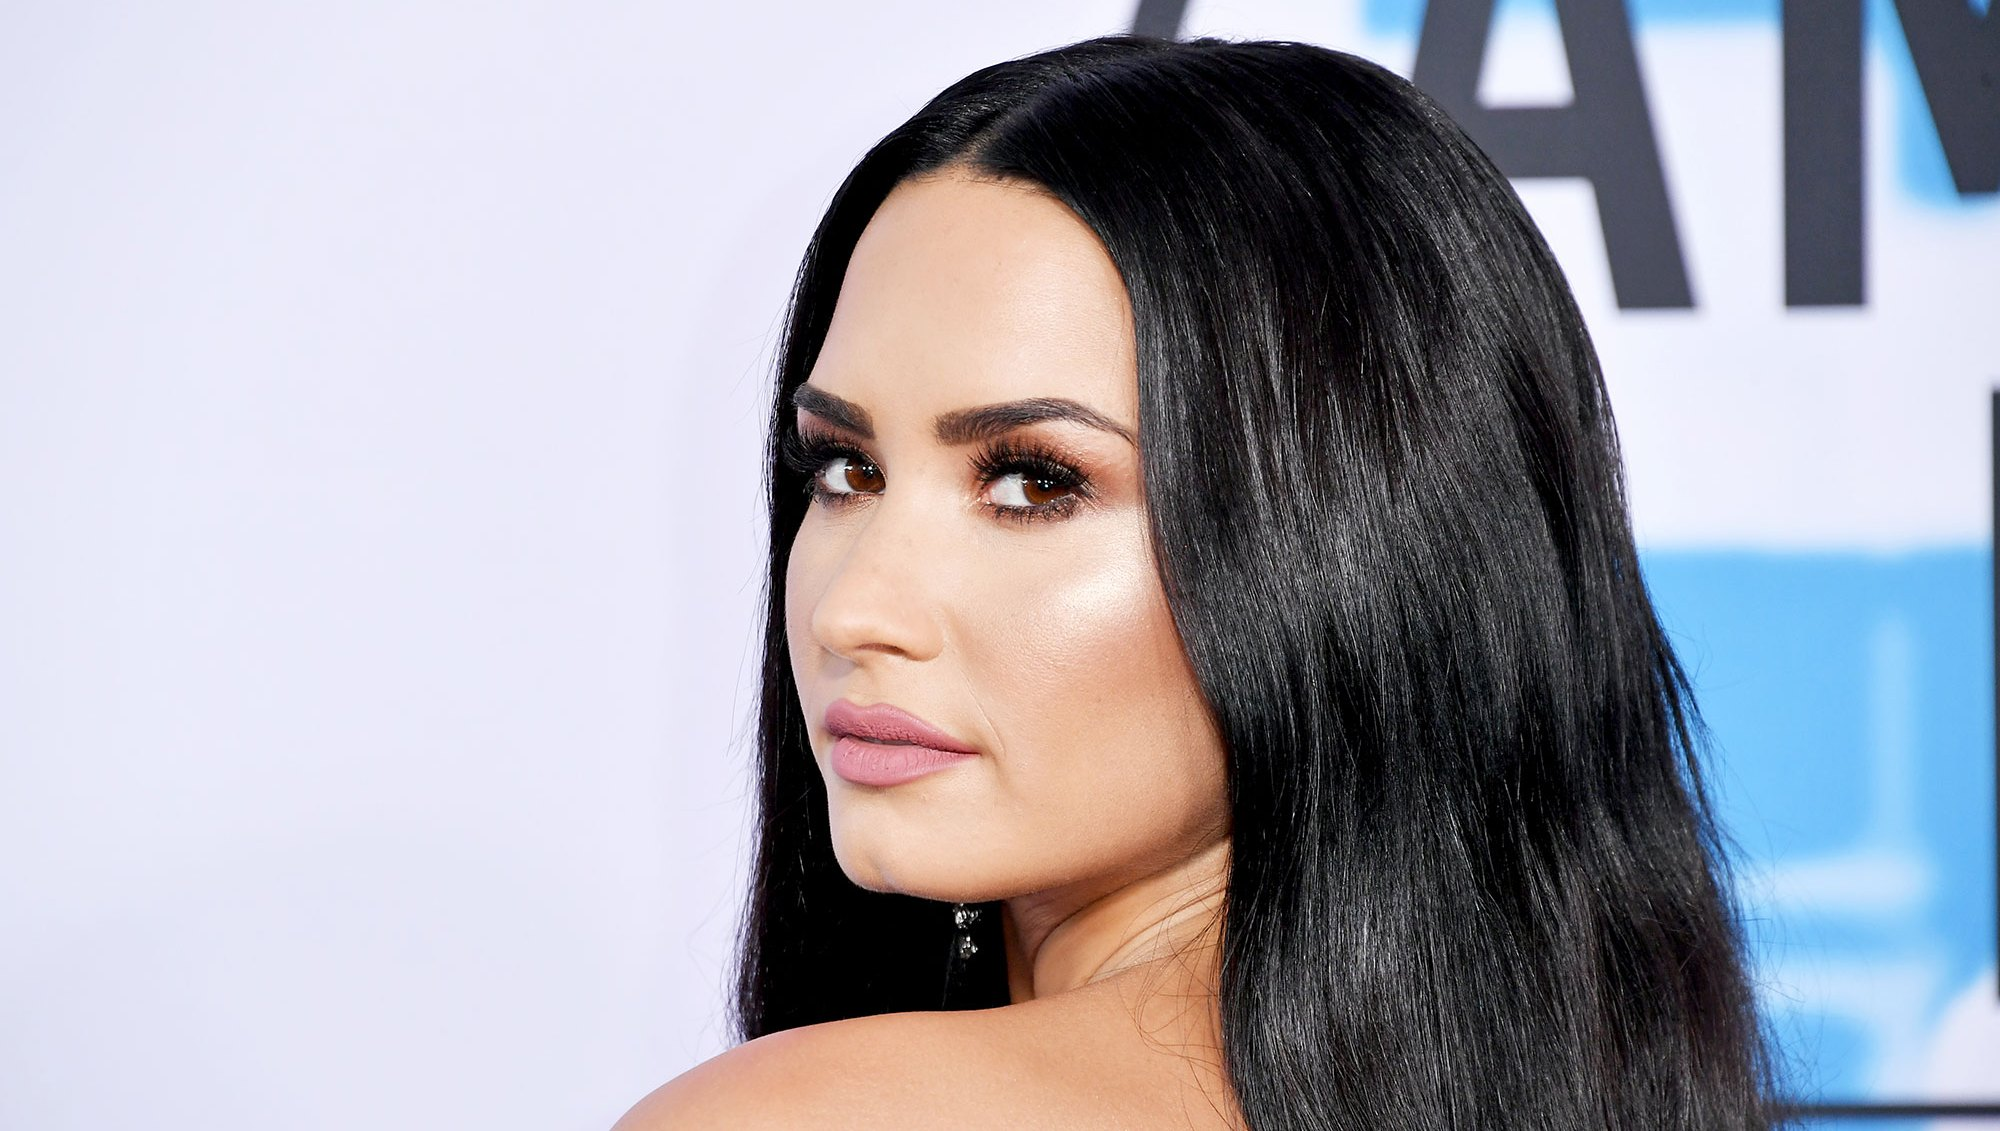 Demi Lovato Drinks Sparkling Cider on New Year's Eve After Overdose